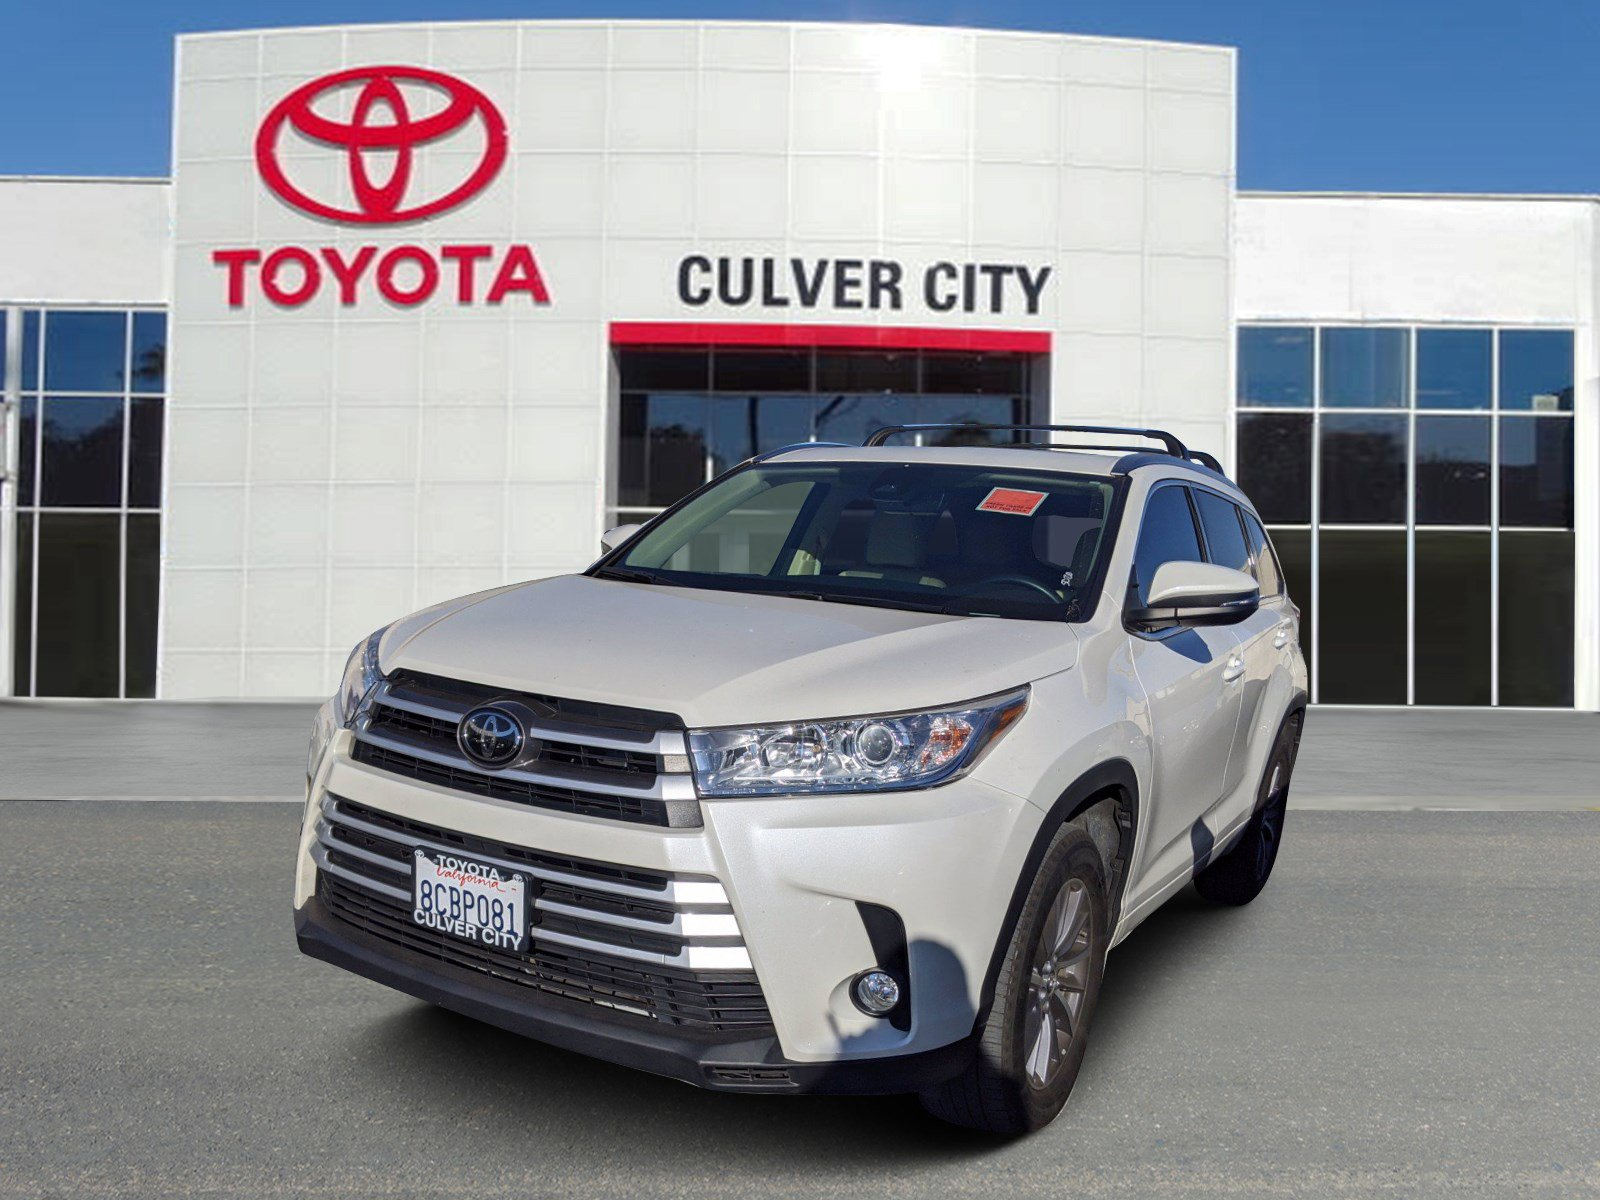 Used Toyota Highlander Culver City Ca